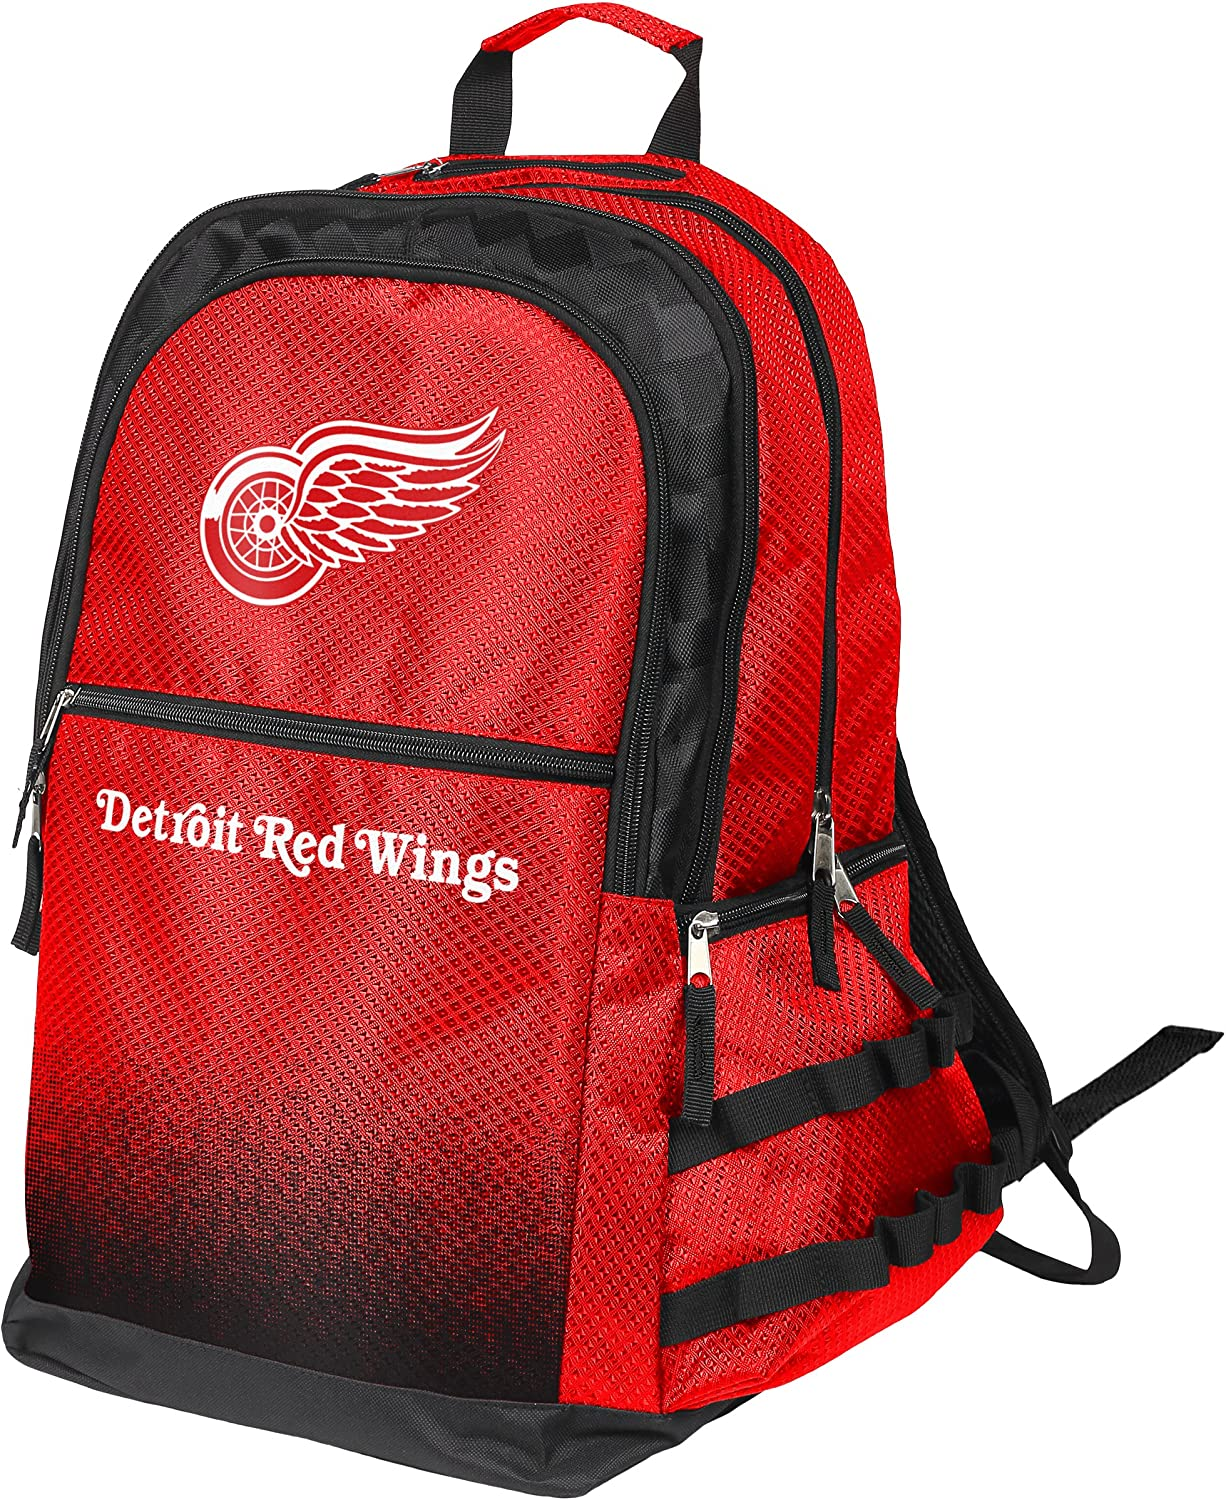 FOCO NHL Gradient Backpack Elite online shopping Max 79% OFF